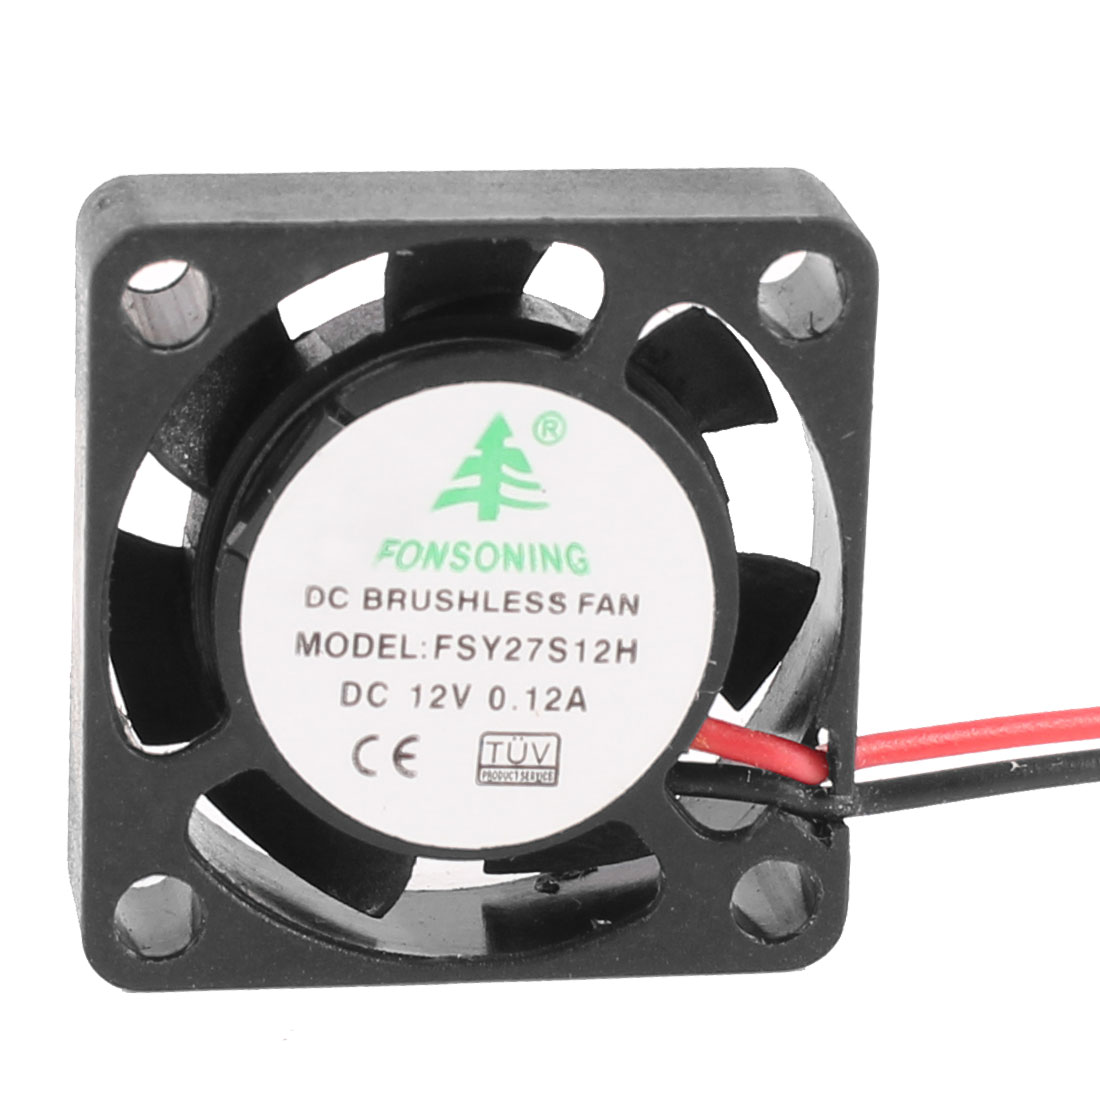 25mm x 25mm x 7mm DC 12V 0.12A 12000RPM Brushless Mini Cooling Fan Black